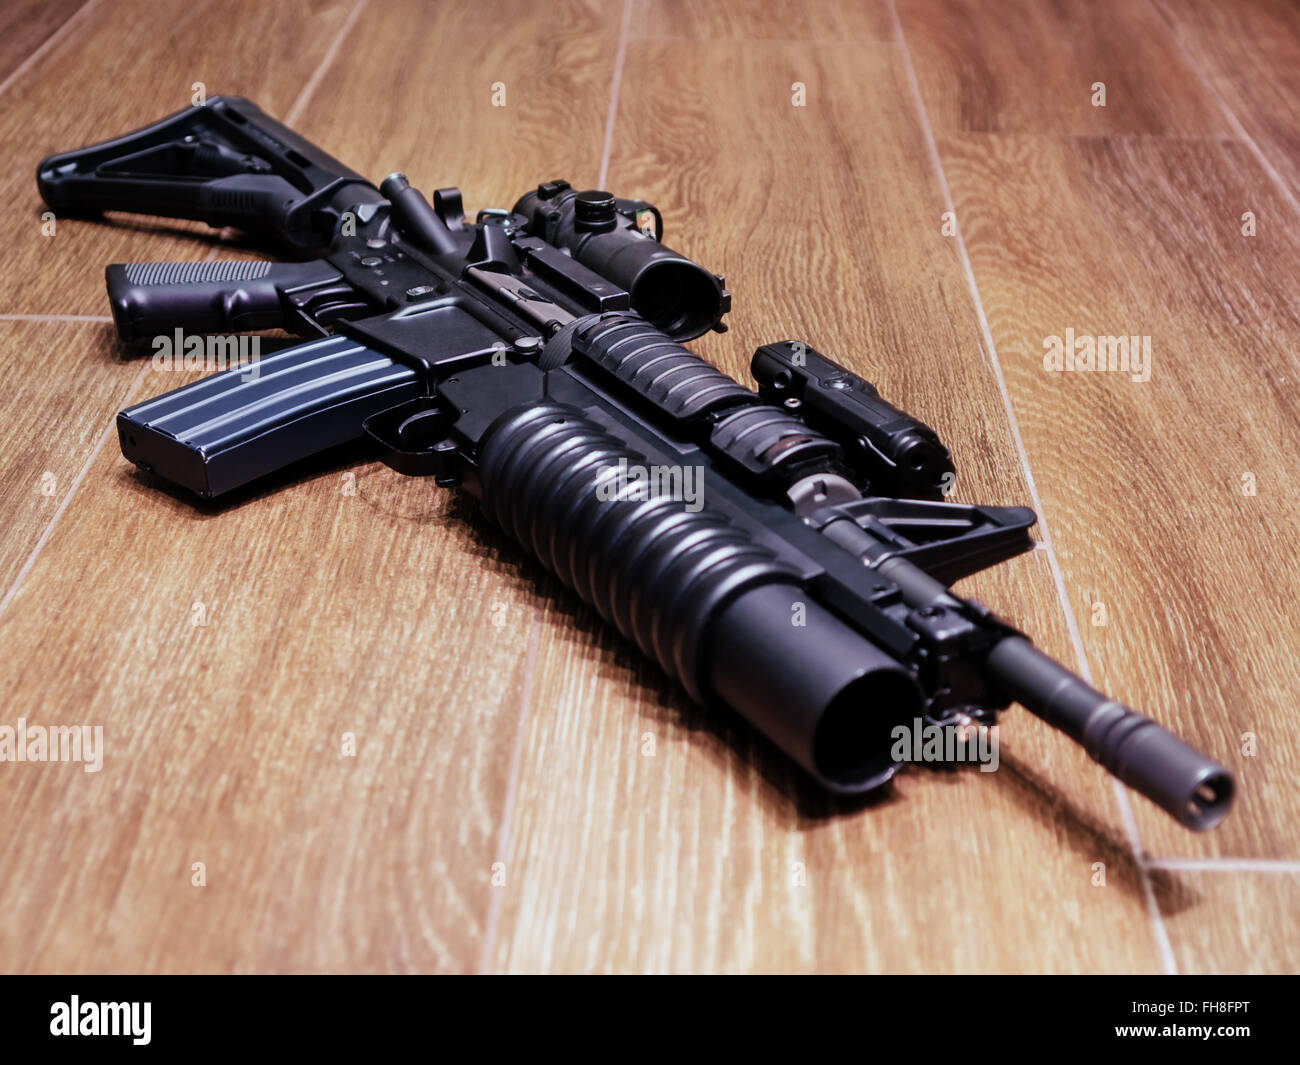 AR15 rifle with grenade launcher on the wooden floor, selective focus - Stock Image